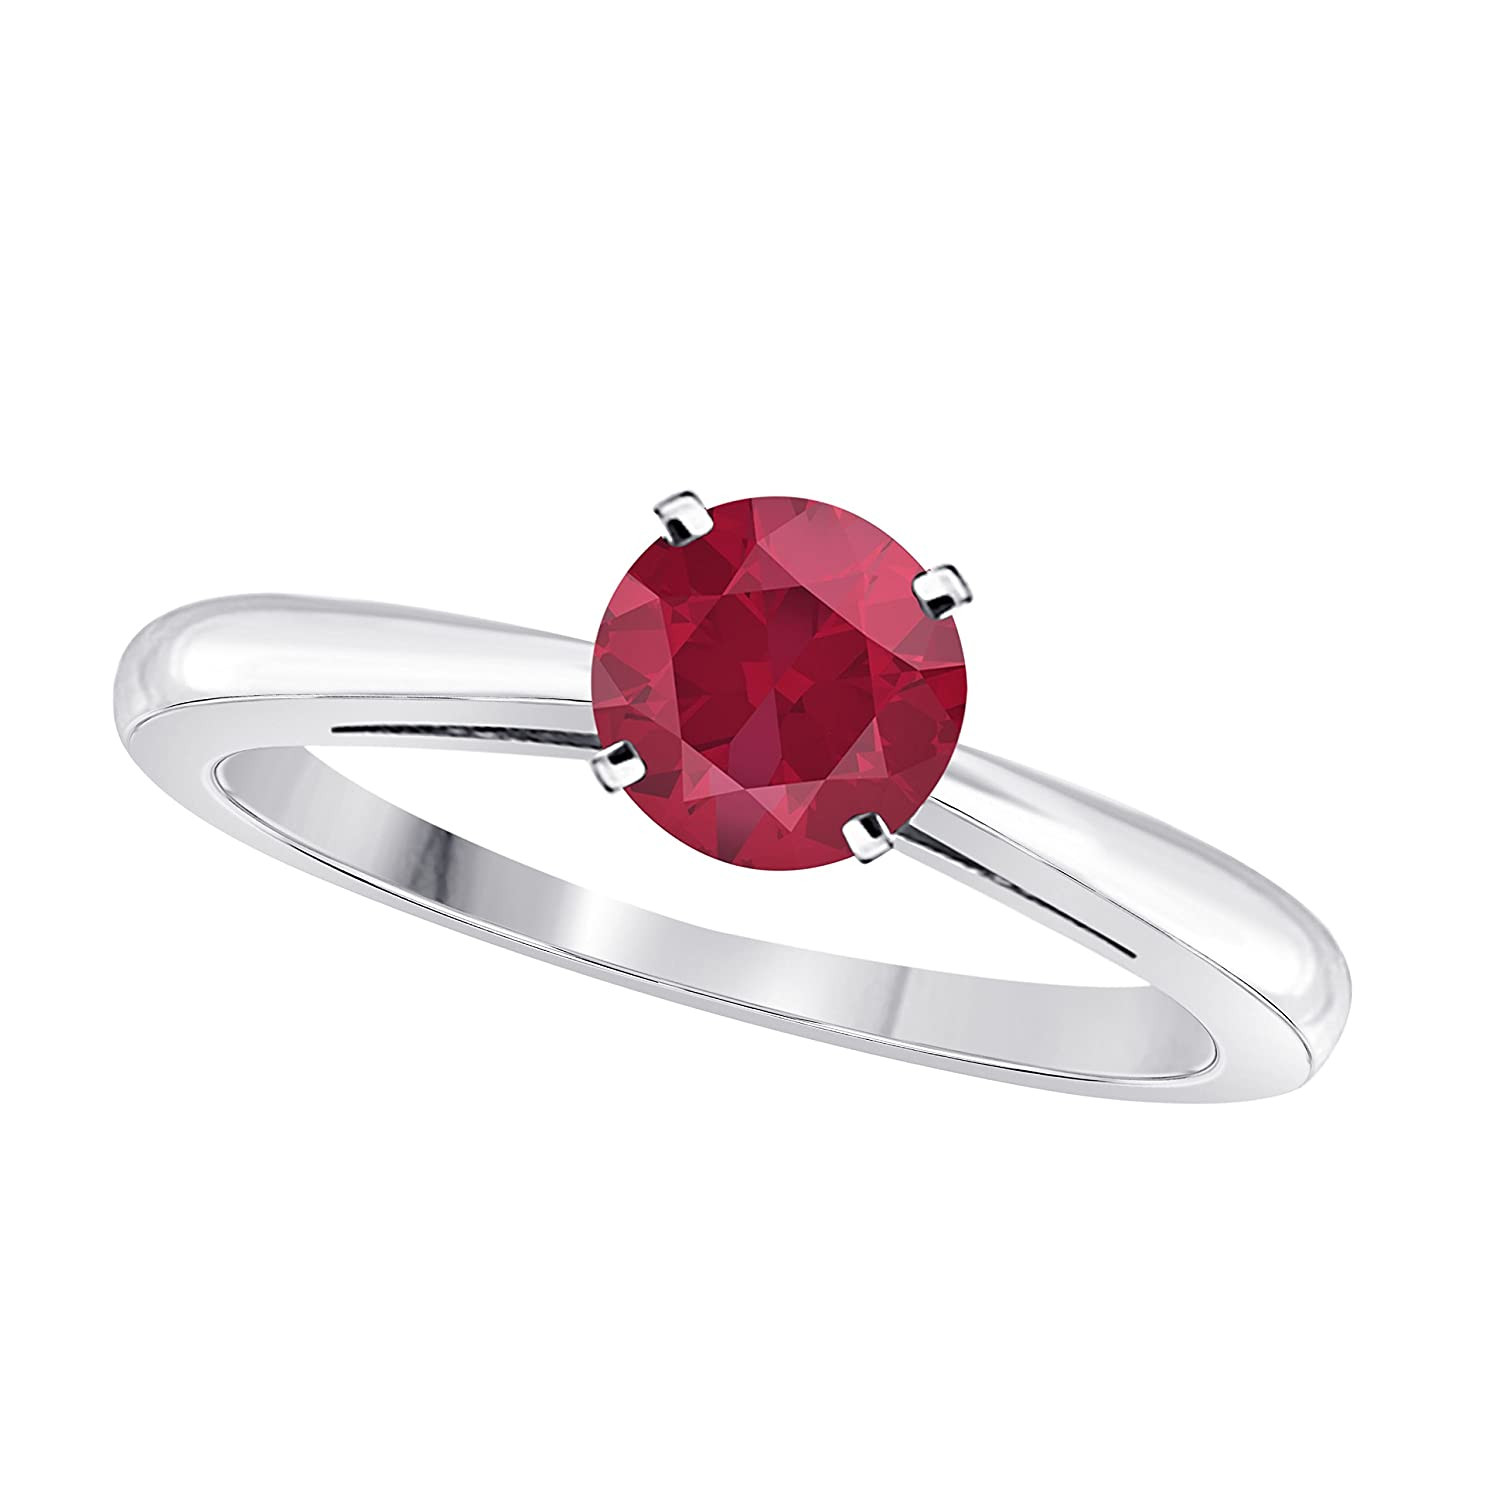 Dream/Jewelry Elegant 1ct Round Round Cut Solitaire Halo Created Red Ruby Wedding Engagement Ring in .925 Sterling Silver Plated